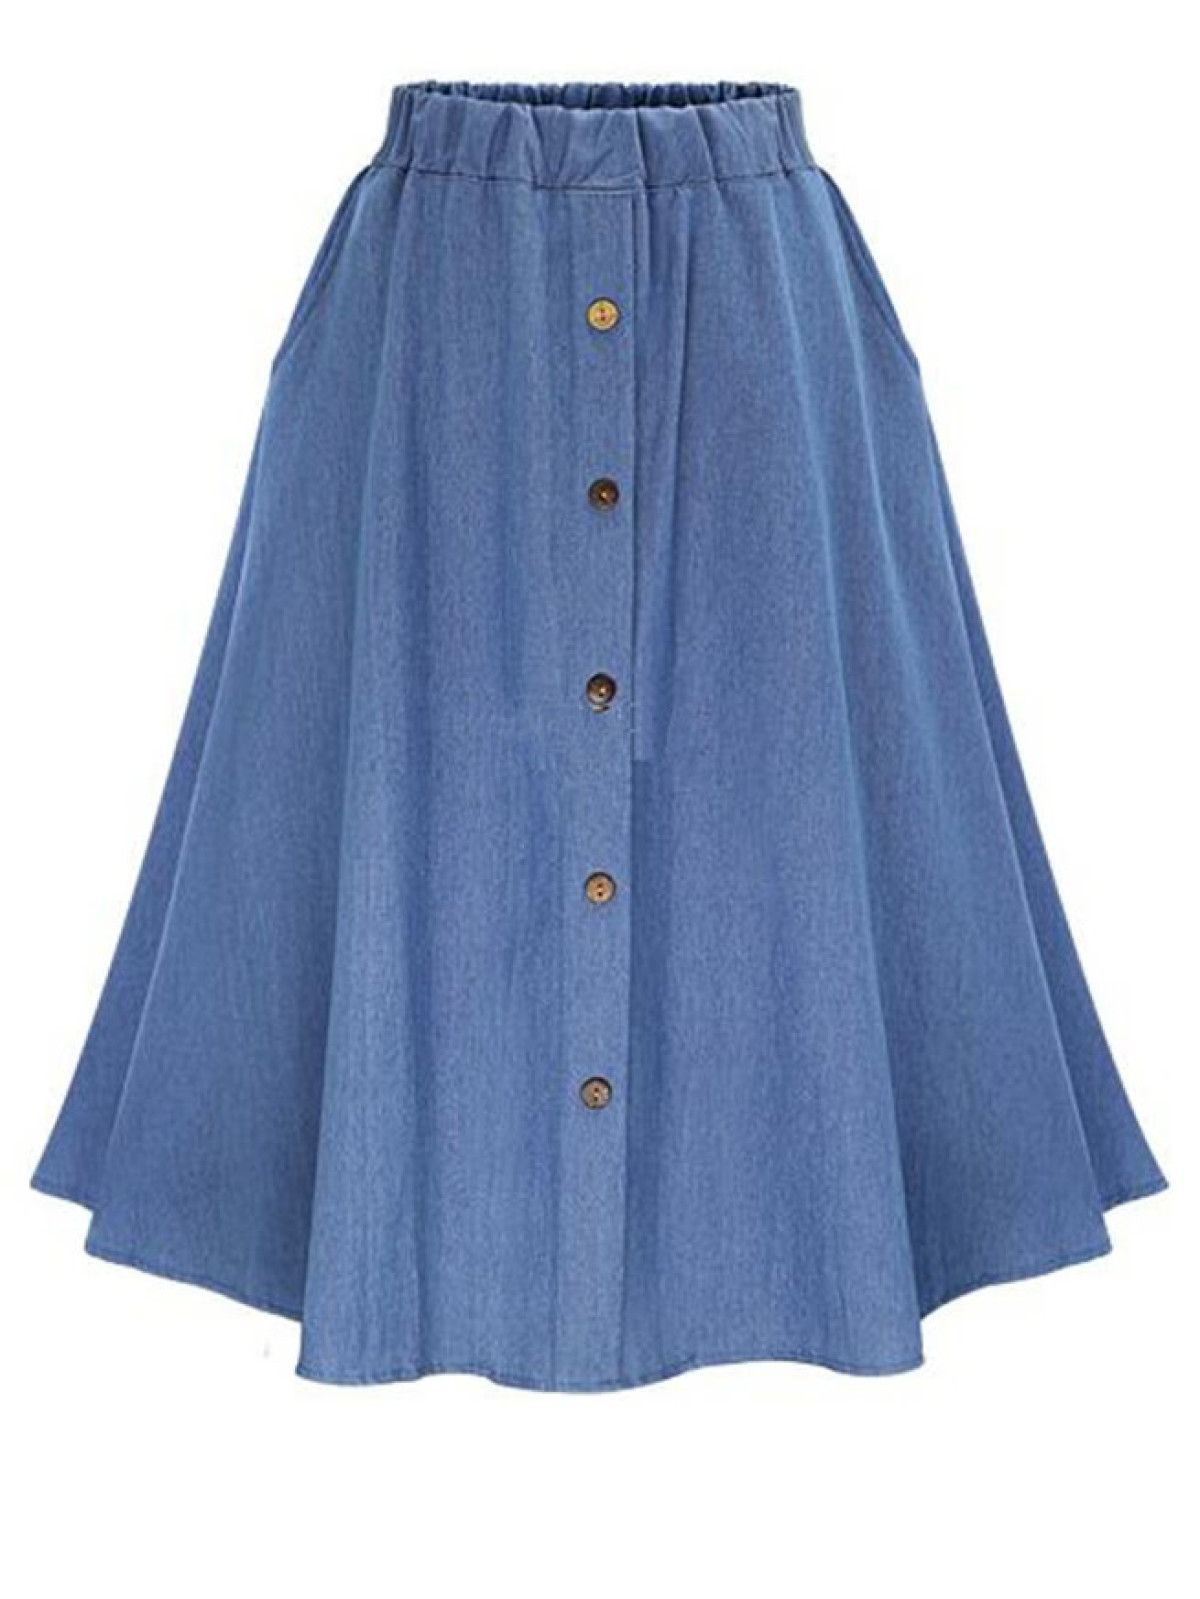 Romwe A Line Button Front Skirt.jpg